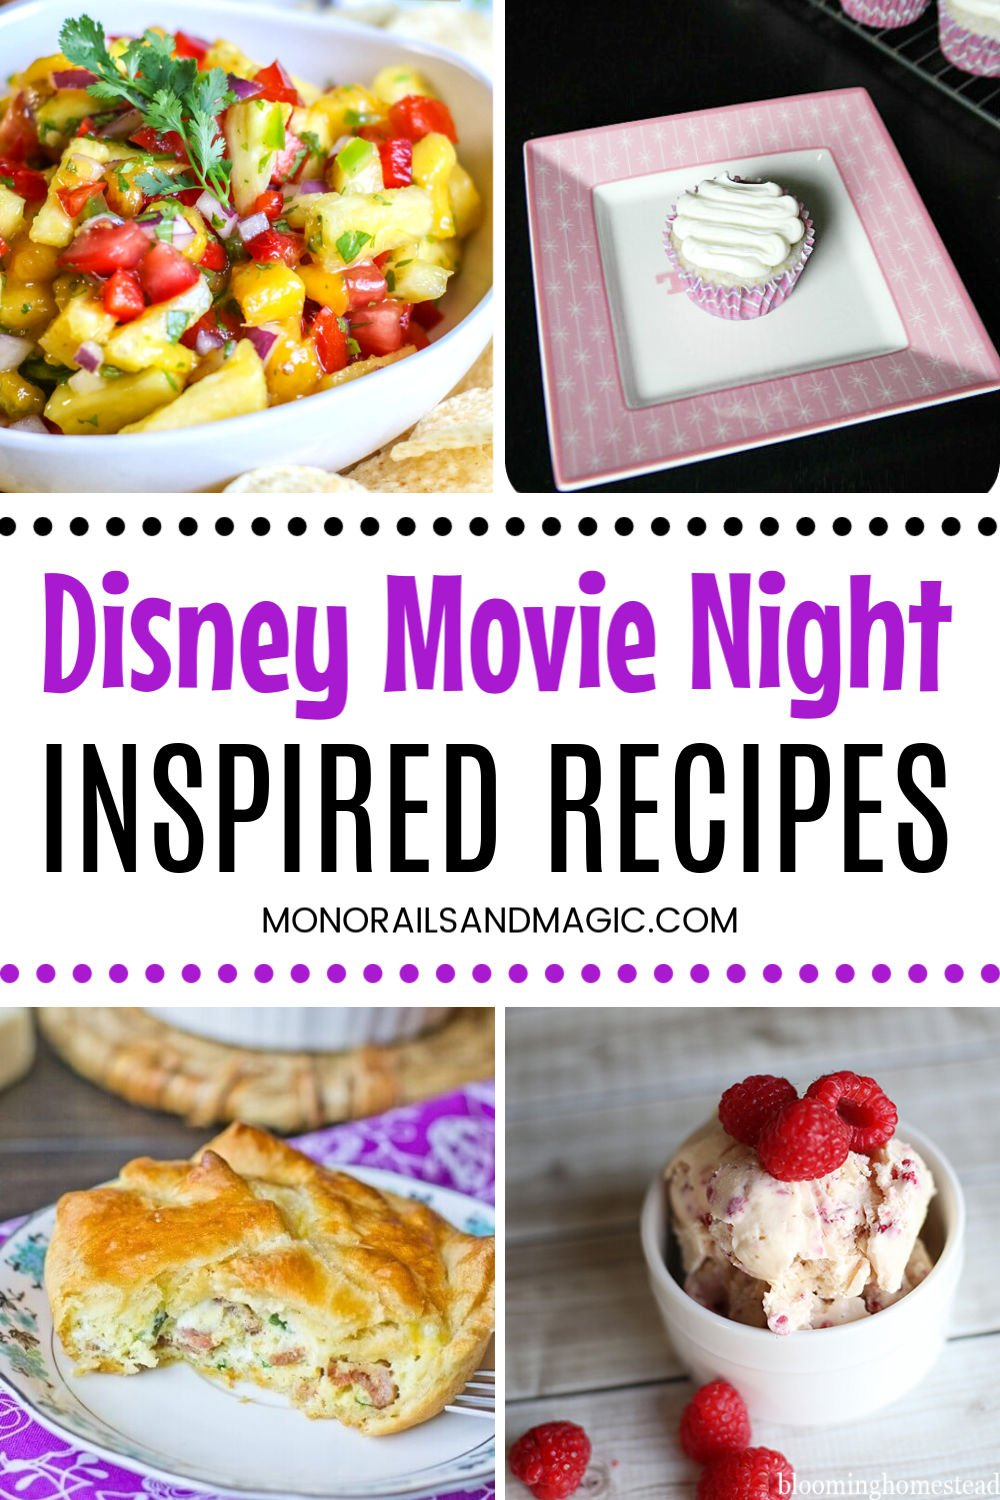 Disney inspired recipes for your family movie night.